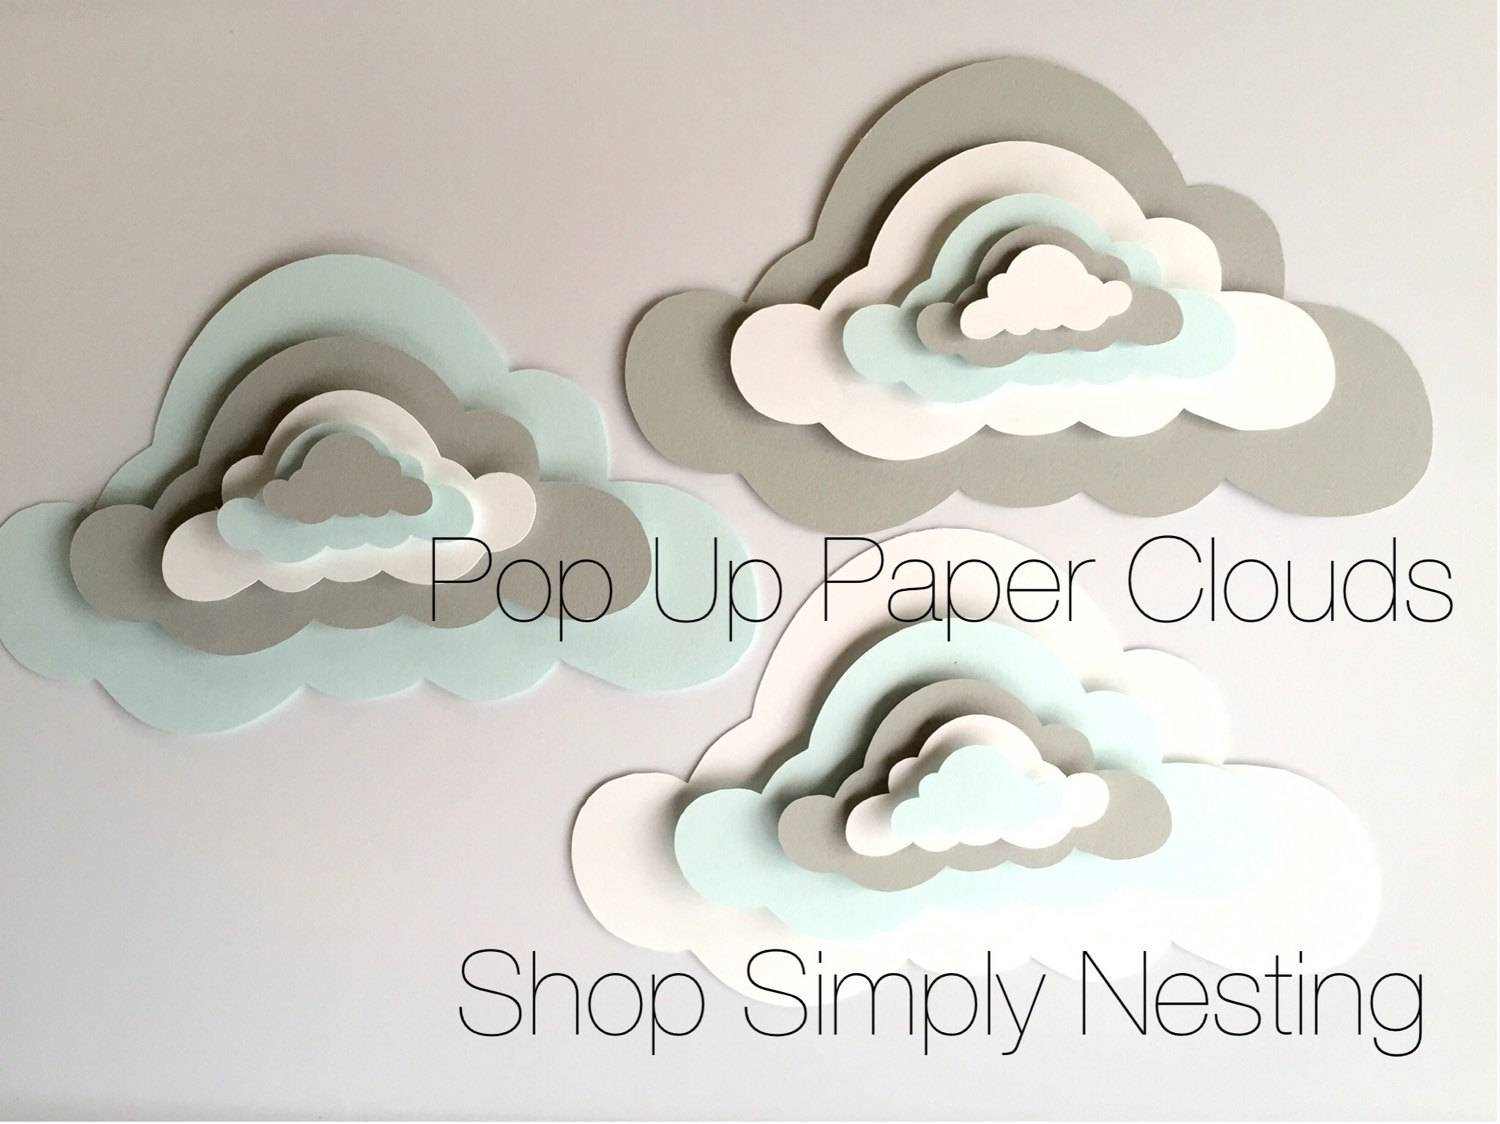 3 Pop Up Paper Clouds Cloud Wall Art 3 3d Paper Clouds With Most Current 3d Clouds Out Of Paper Wall Art (View 4 of 25)